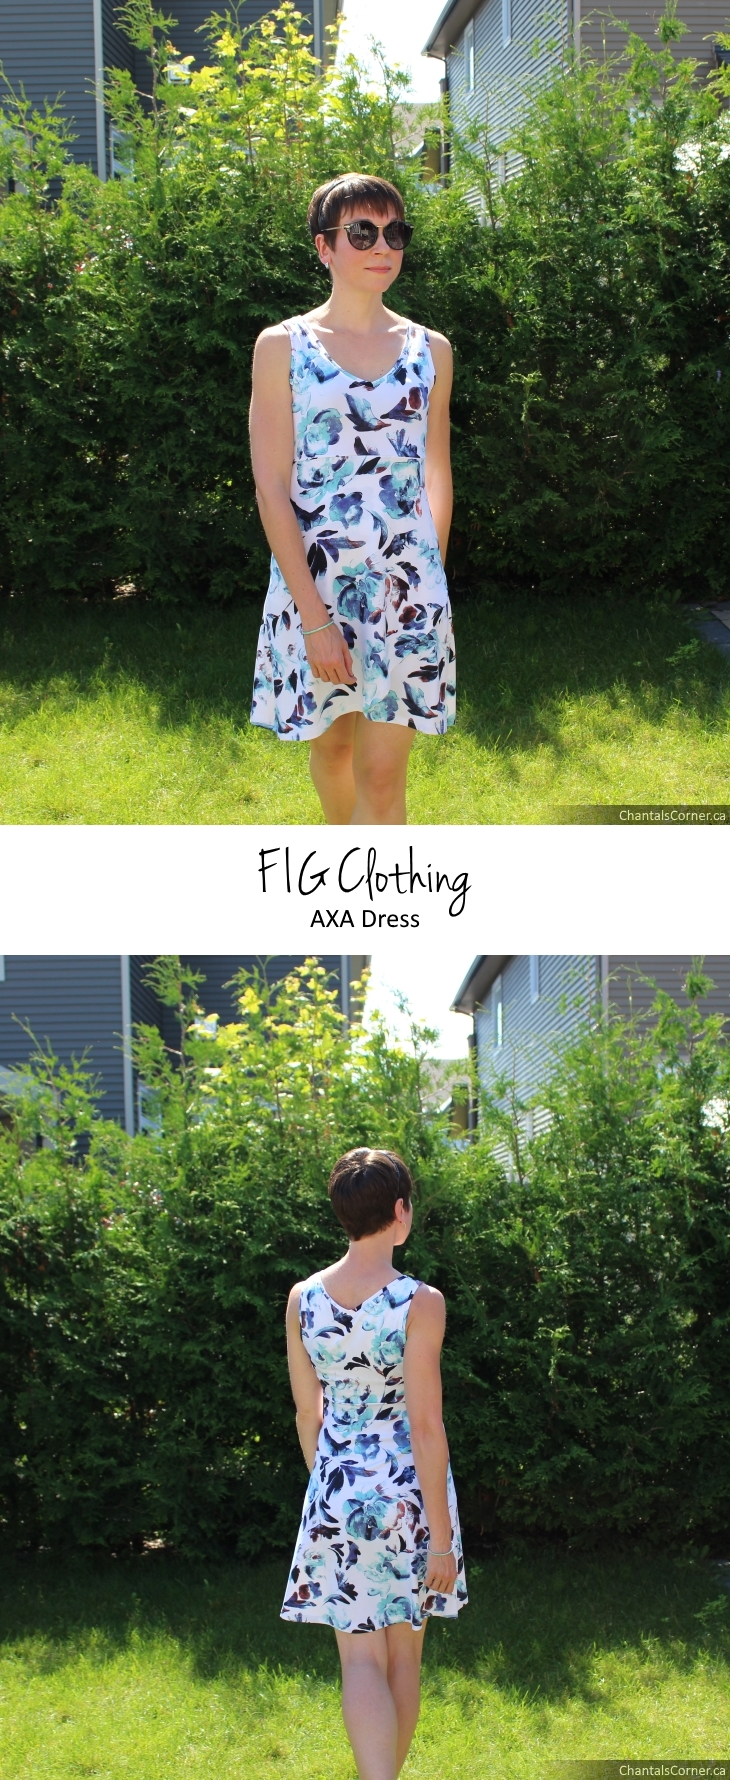 FIG Clothing AXA dress Ocean collection